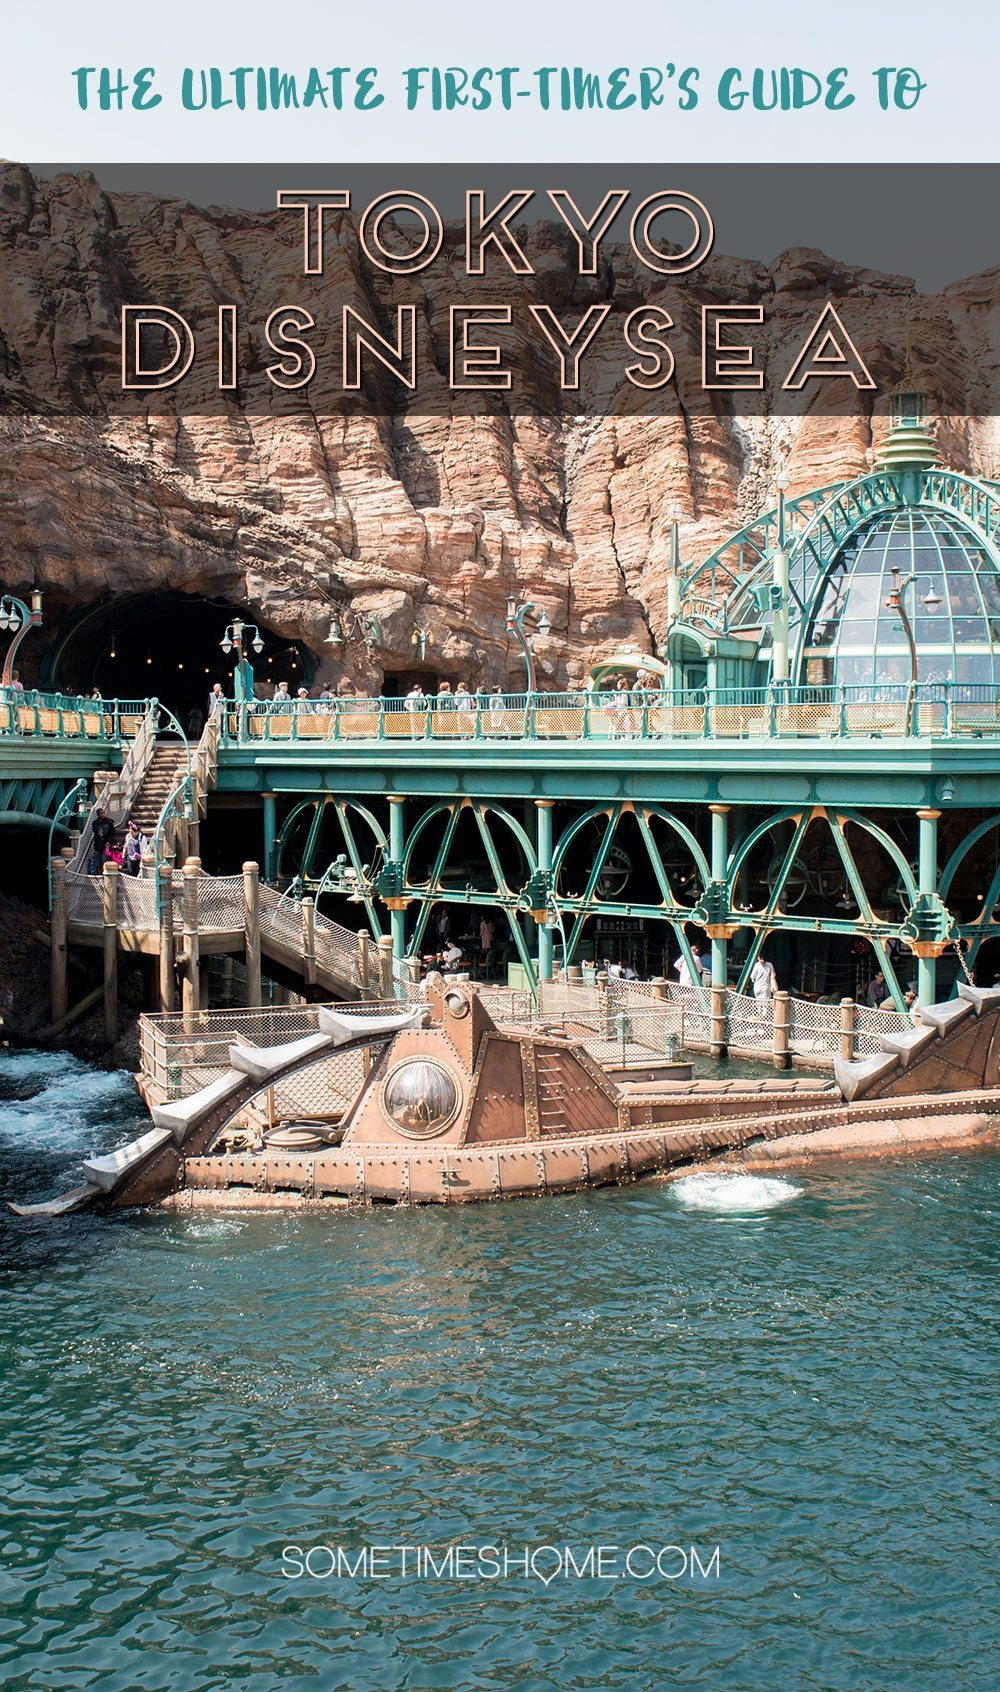 The Ultimate First-Timer's Guide to Tokyo DisneySea on Sometimes Home travel blog.